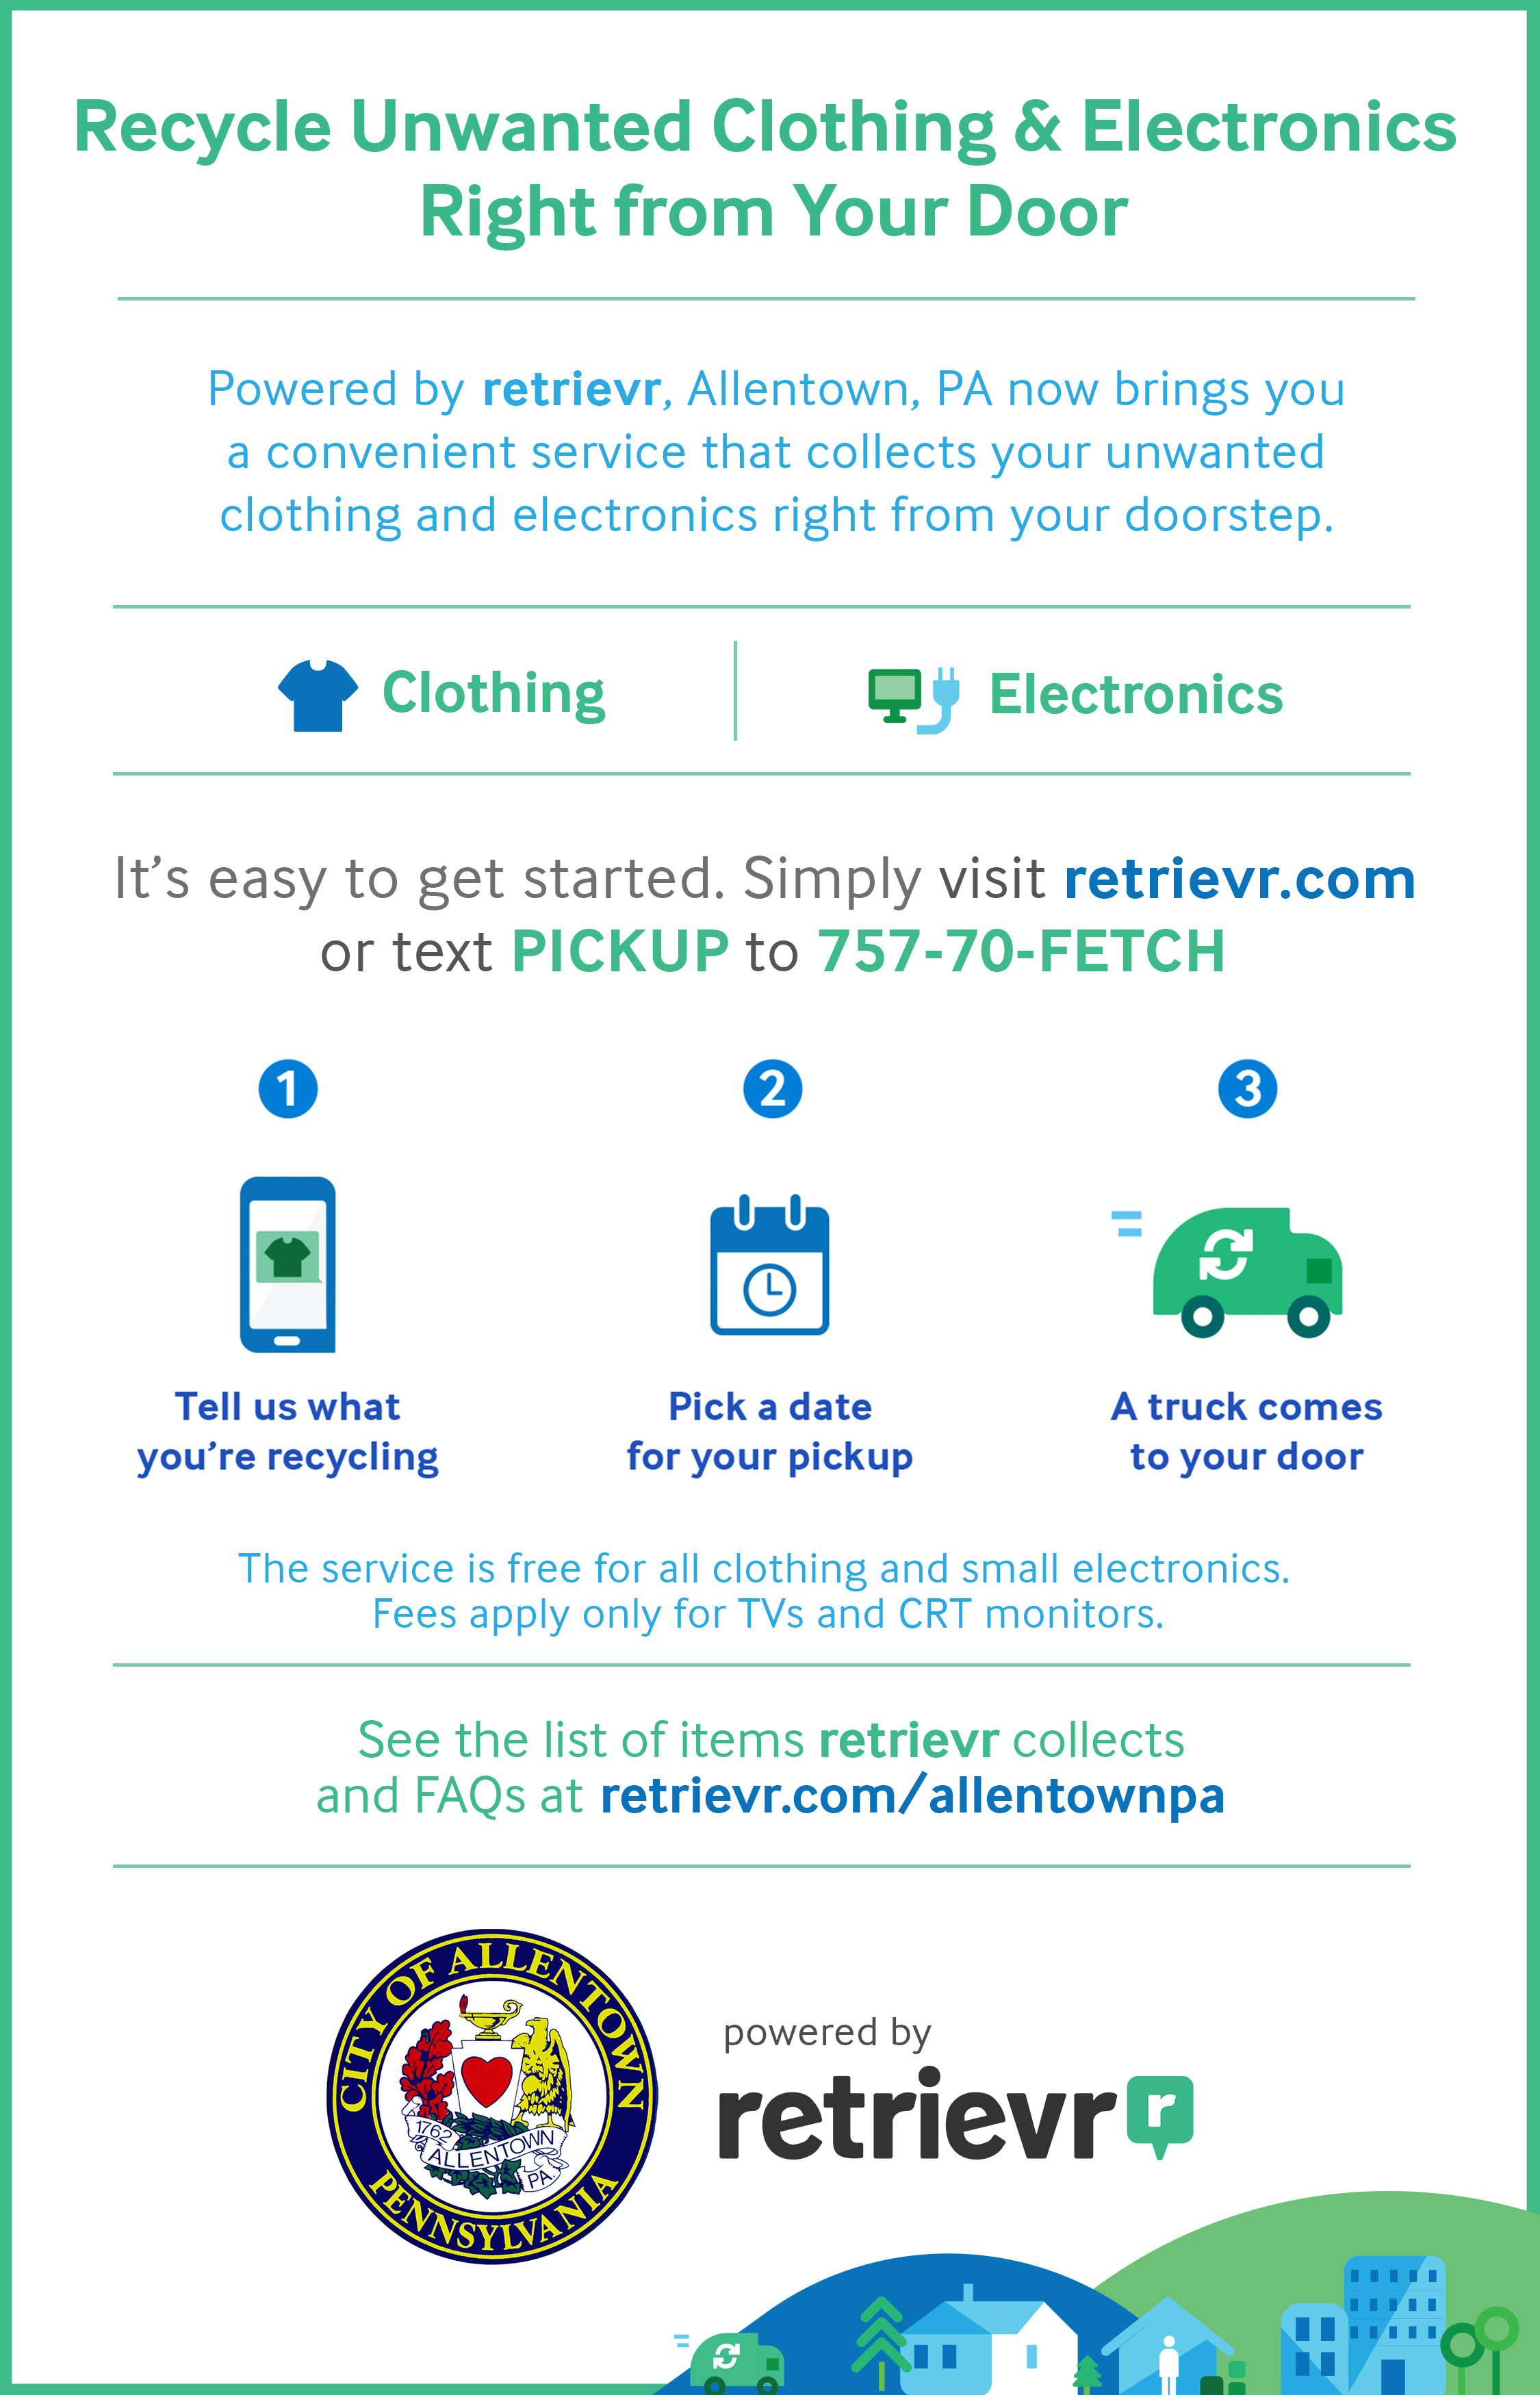 Recycle unwanted clothing and electronics right from your door. It's easy to get started. Simply visit retrievr.com or text PICKUP to 757-70-FETCH. See the list of items retrievr collects, TV fees in your area, and other FAQ at retrievr.com/allentownpa.